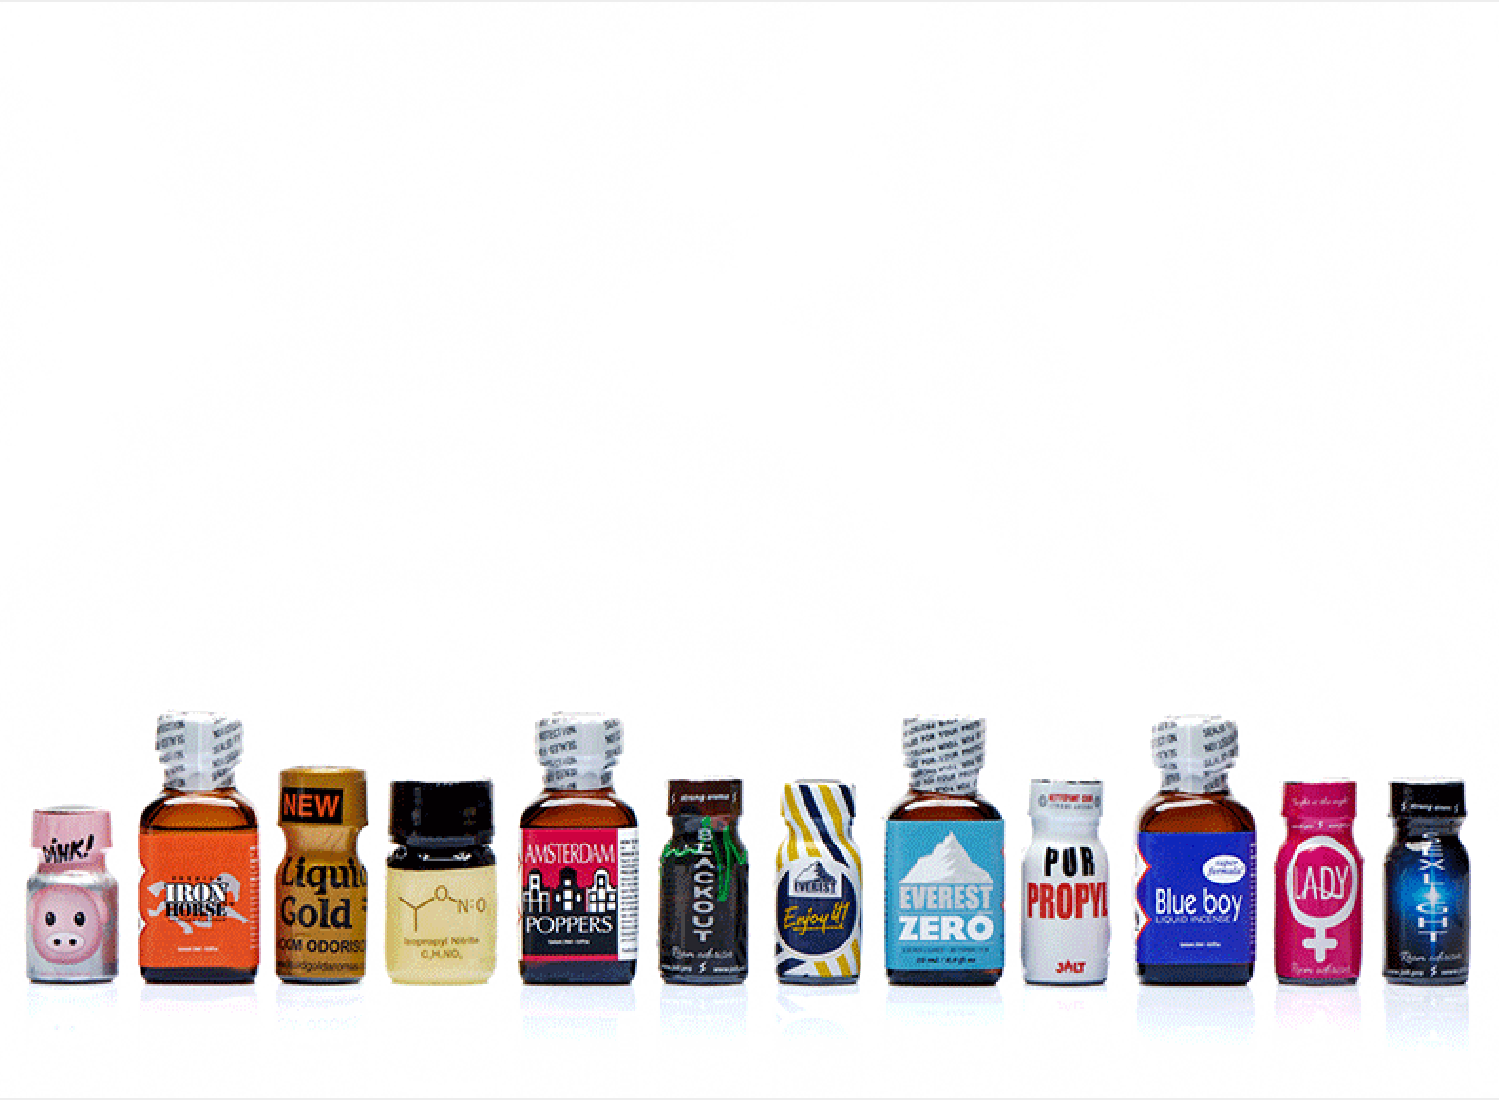 WHICH TYPE OF POPPERS IS MADE FOR YOU?